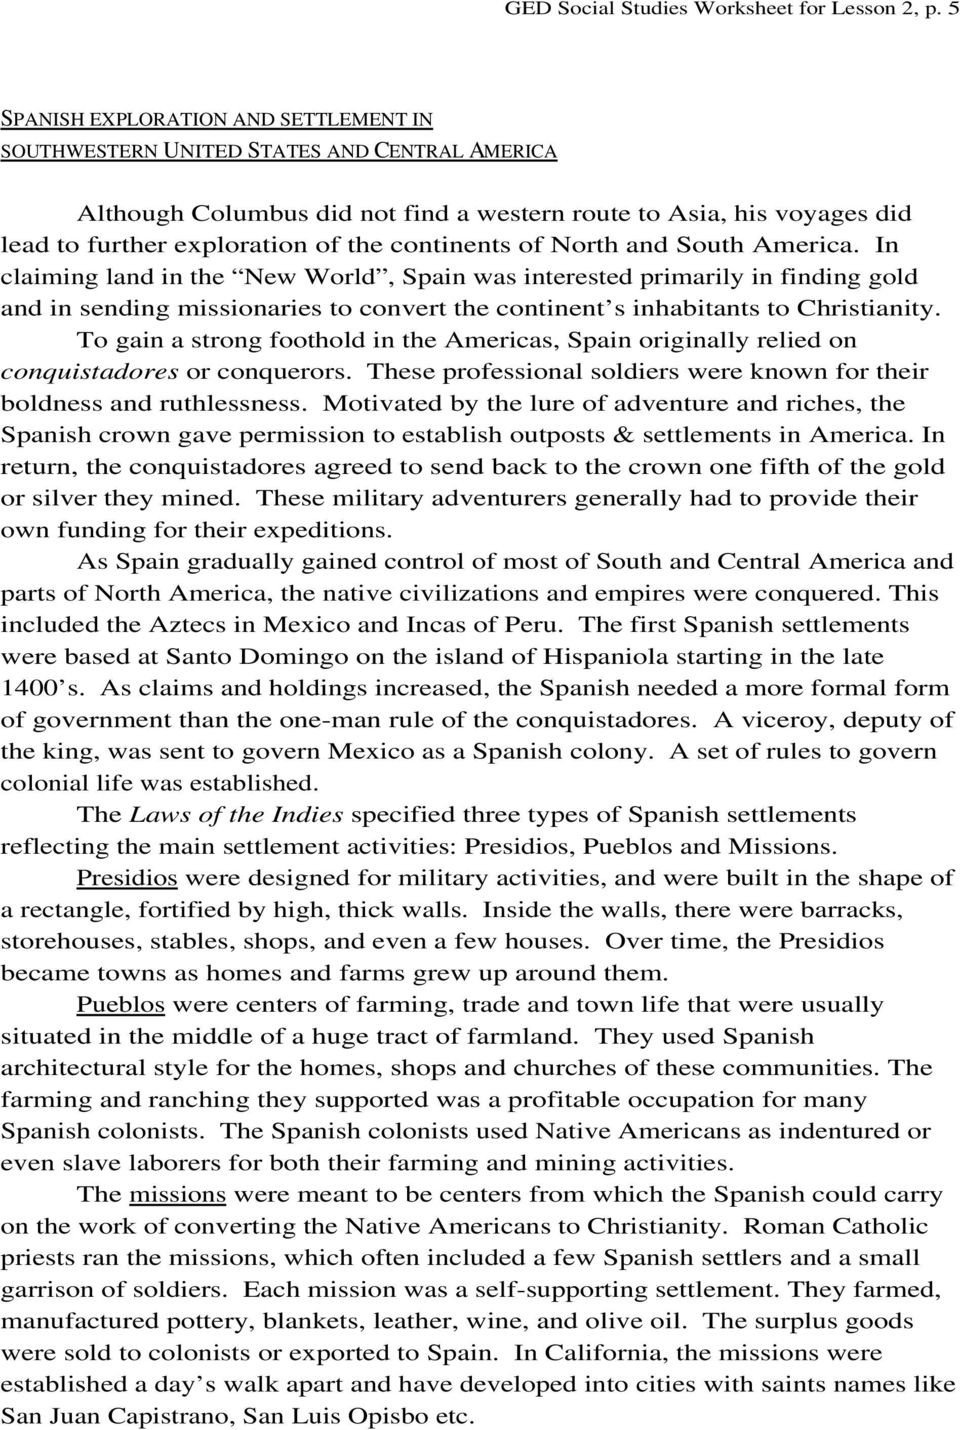 Social Studies Ged Practice Worksheets Ged social Stu S Worksheet Lesson 2 Pdf Free Download